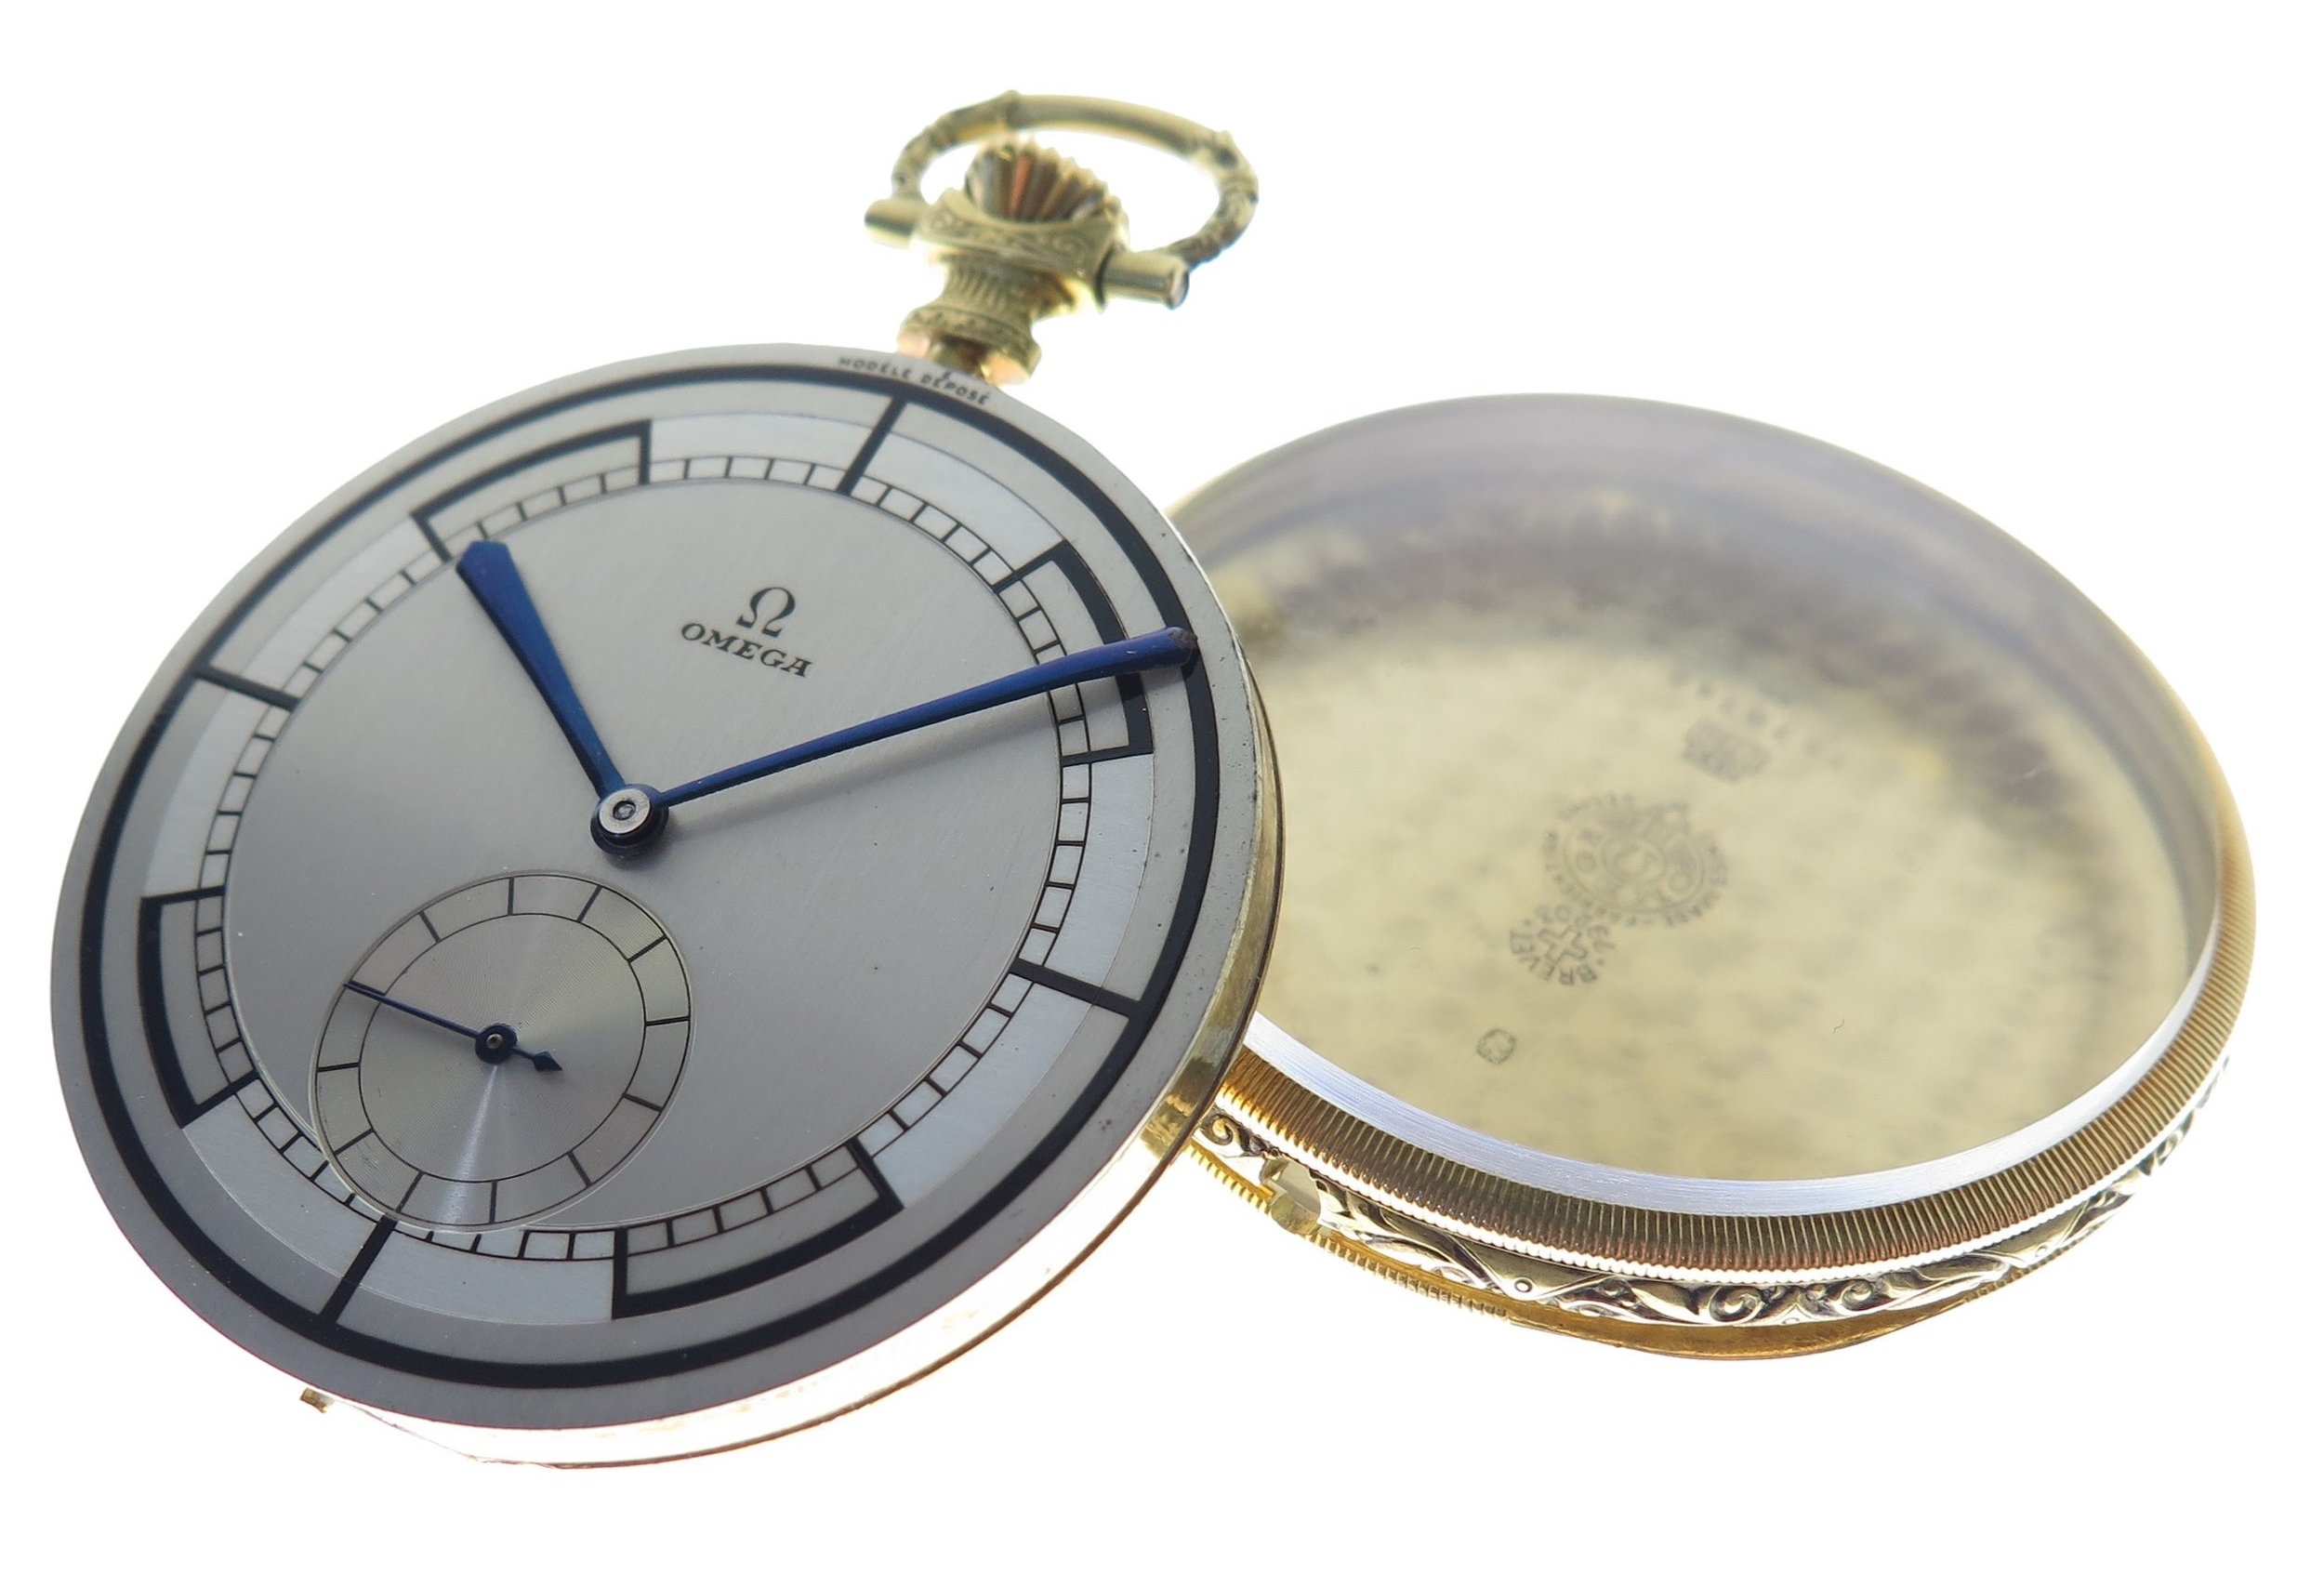 To reduce the amount of gold consumed in the case, the movement is housed in a second inner case which is pushed inside of the gold outer jacket